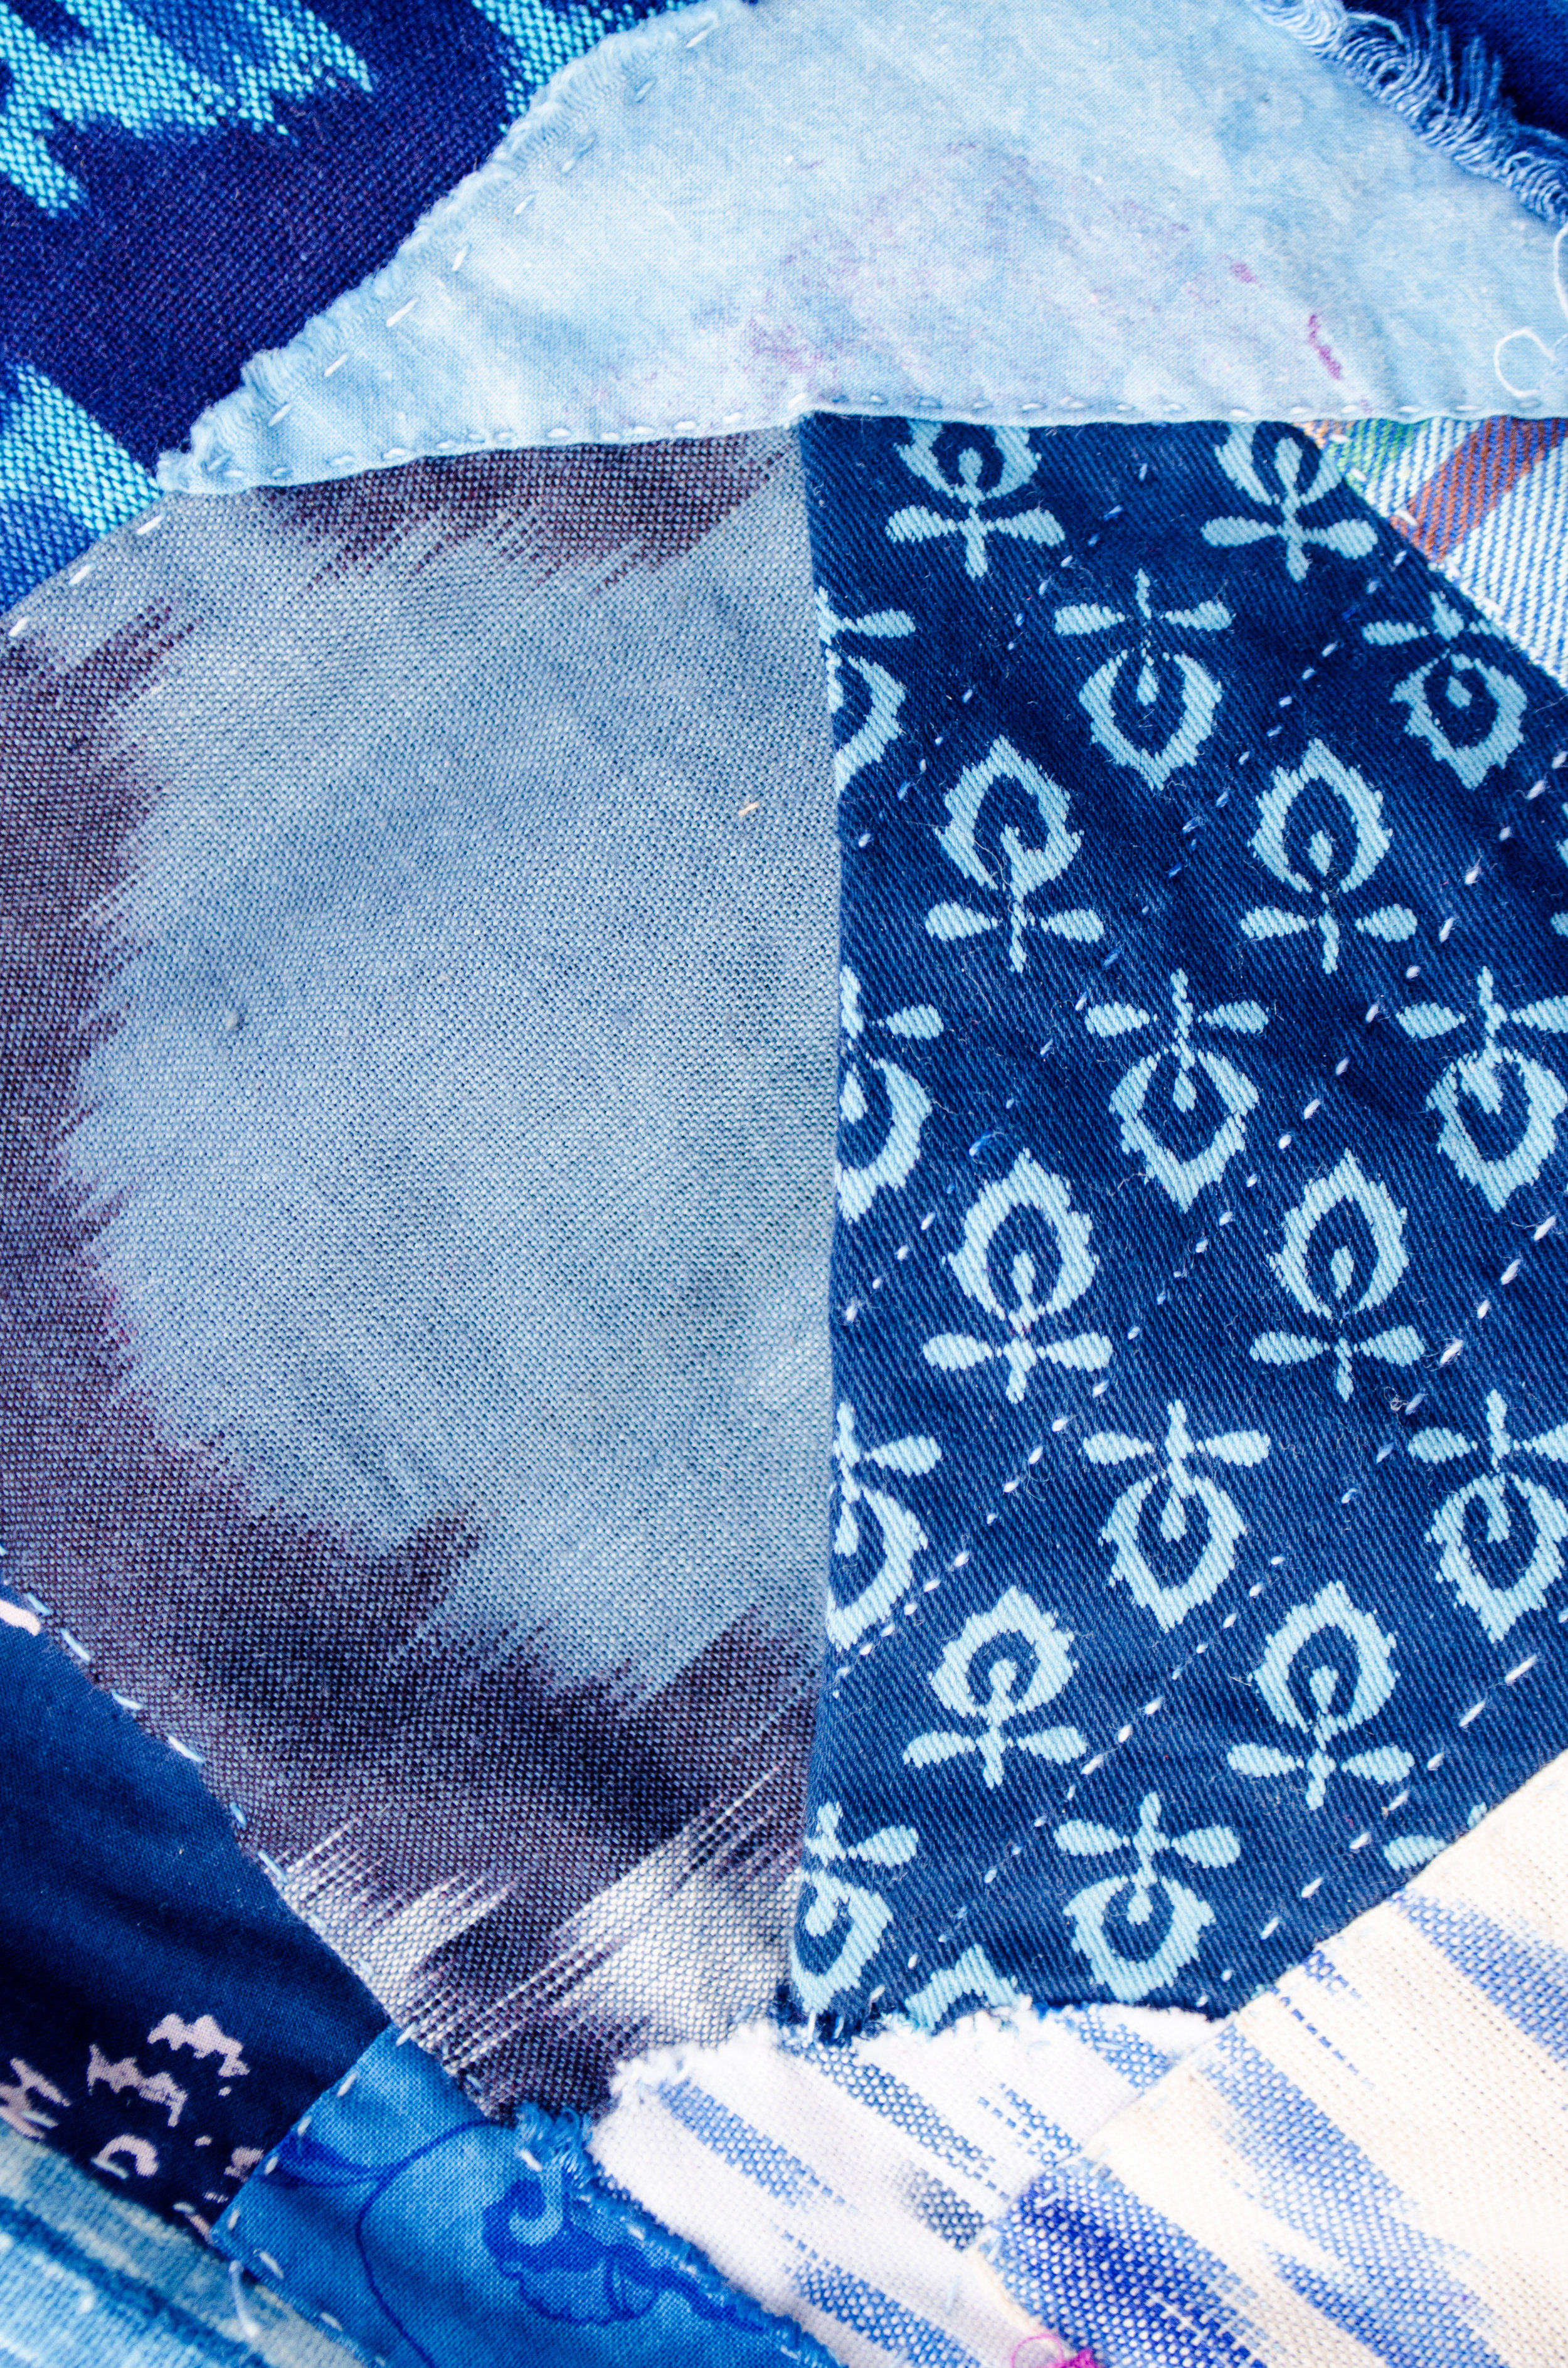 Block Printed Indian Cotton Stitched in the Boro Tradition